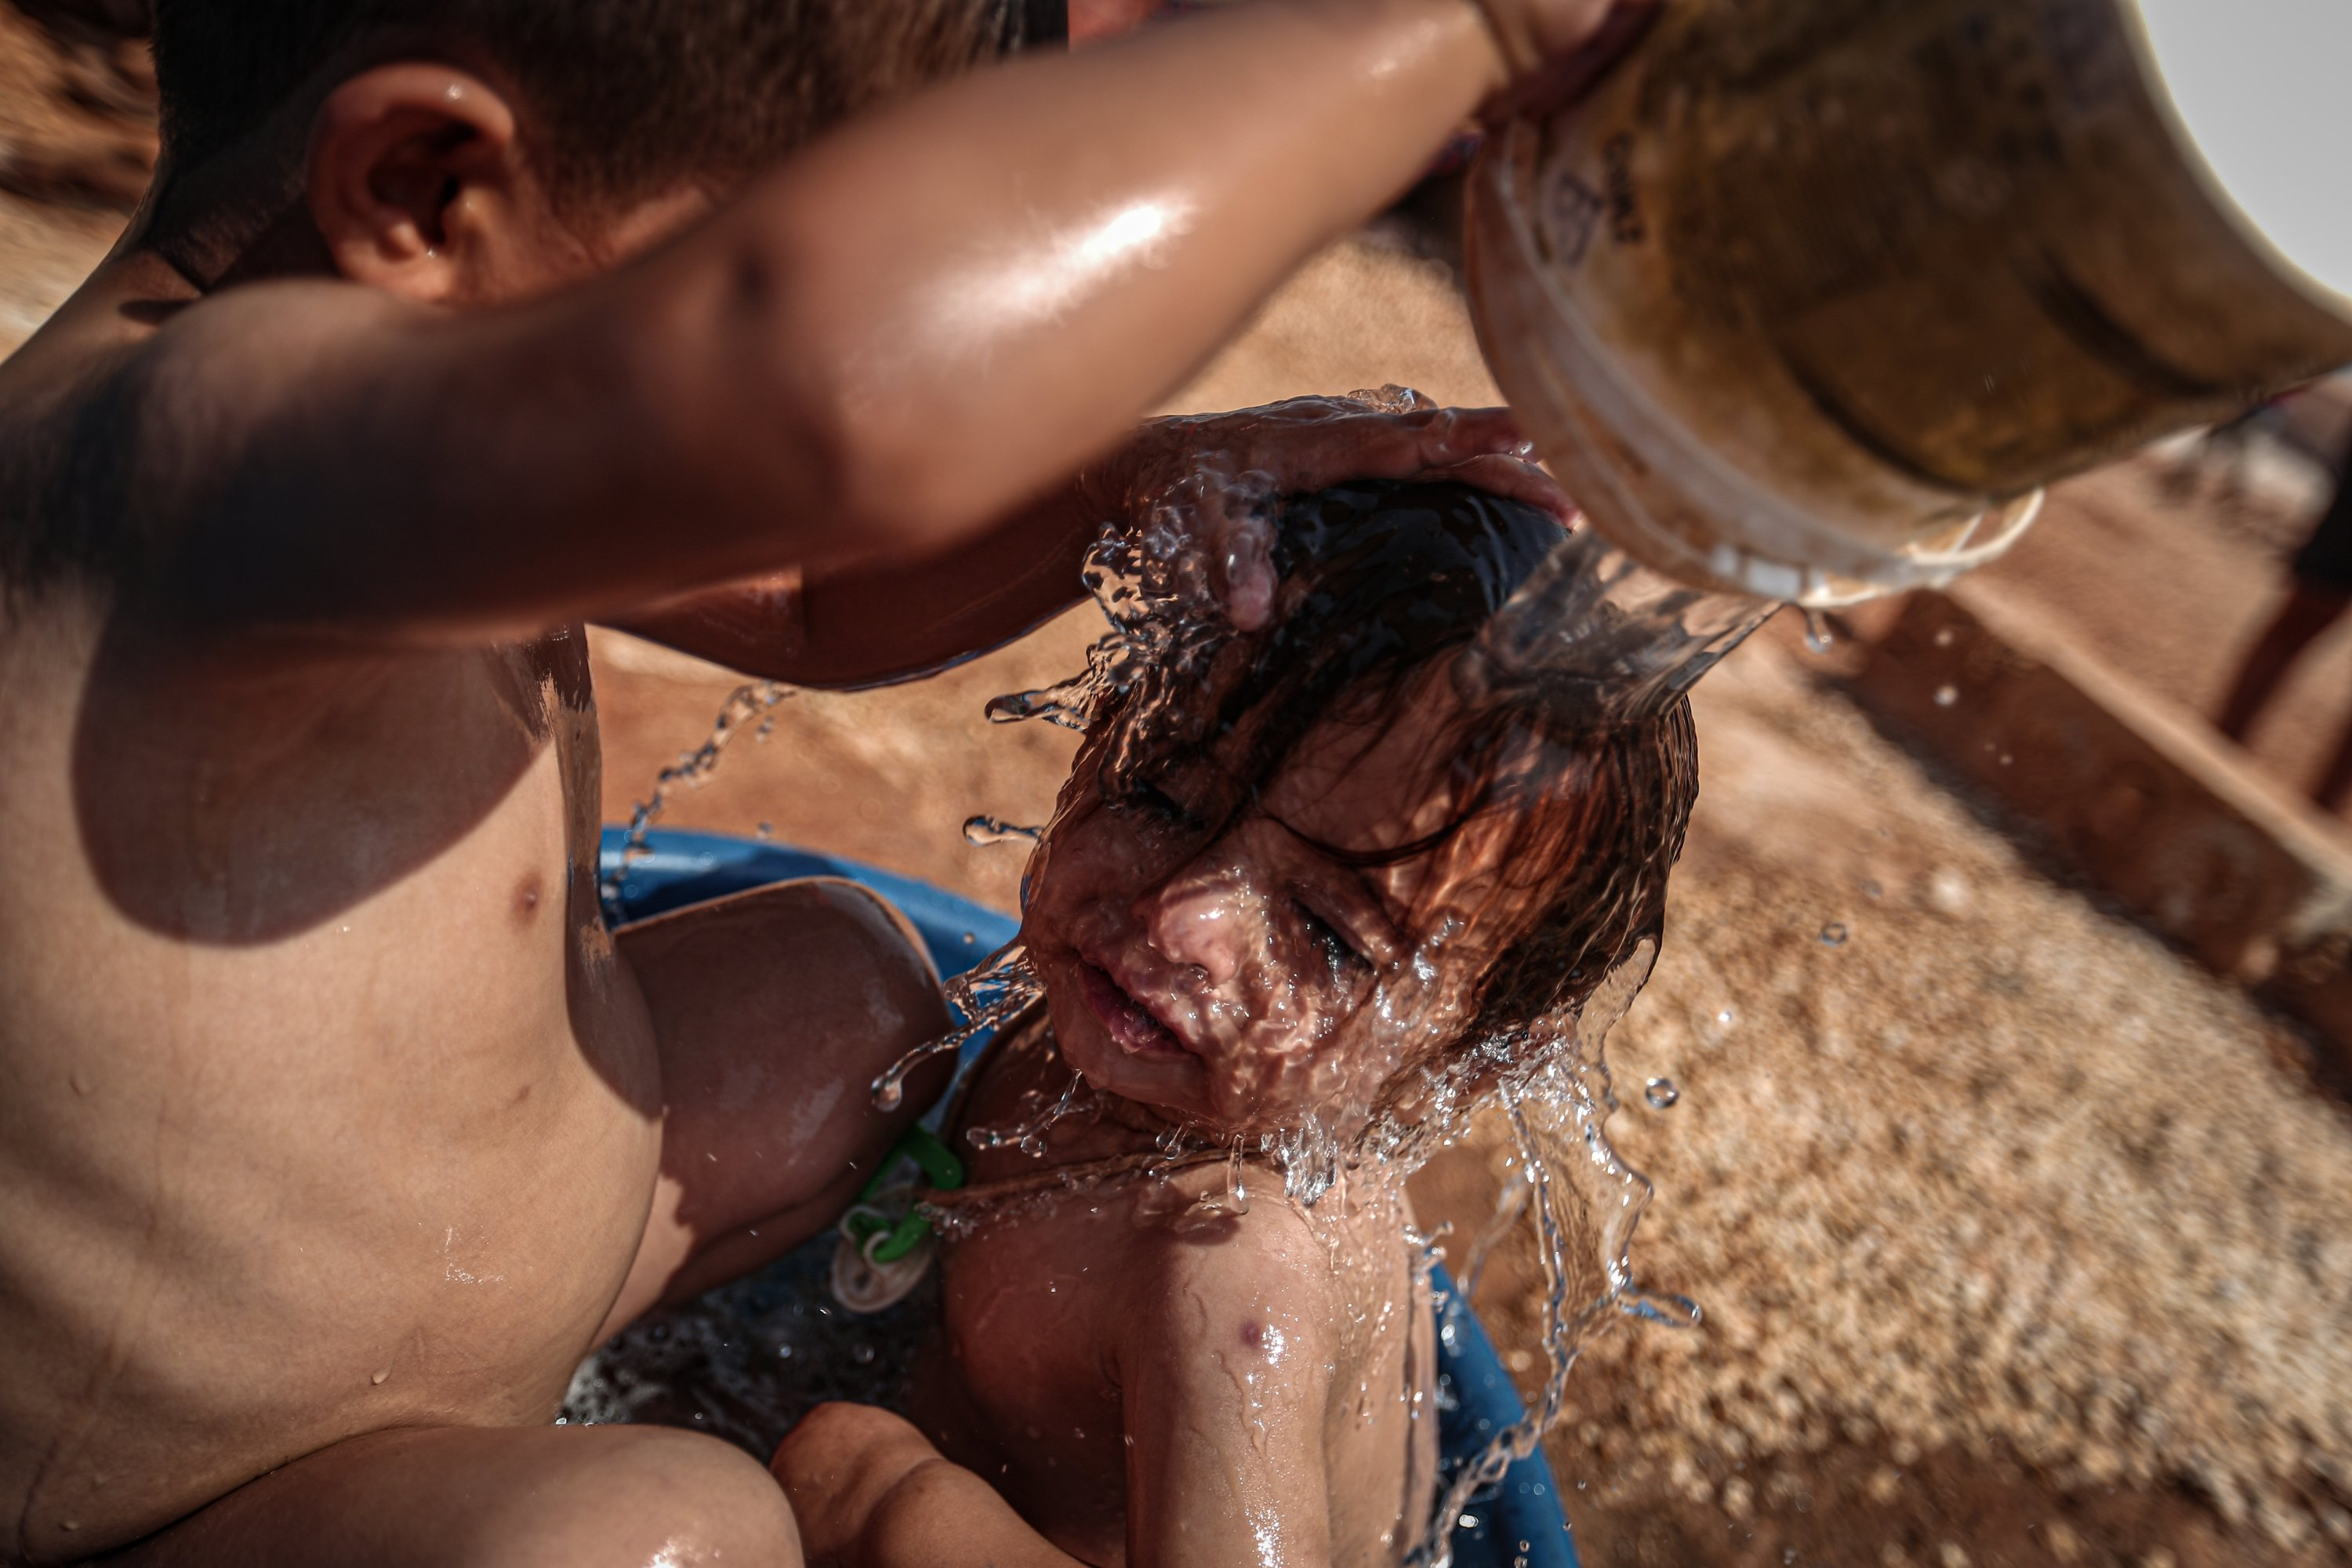 Fed up with the heat, Syrian refugee children find a solution by dousing each other with water from head to toe, Idlib, Sept.3, 2020. (AA)